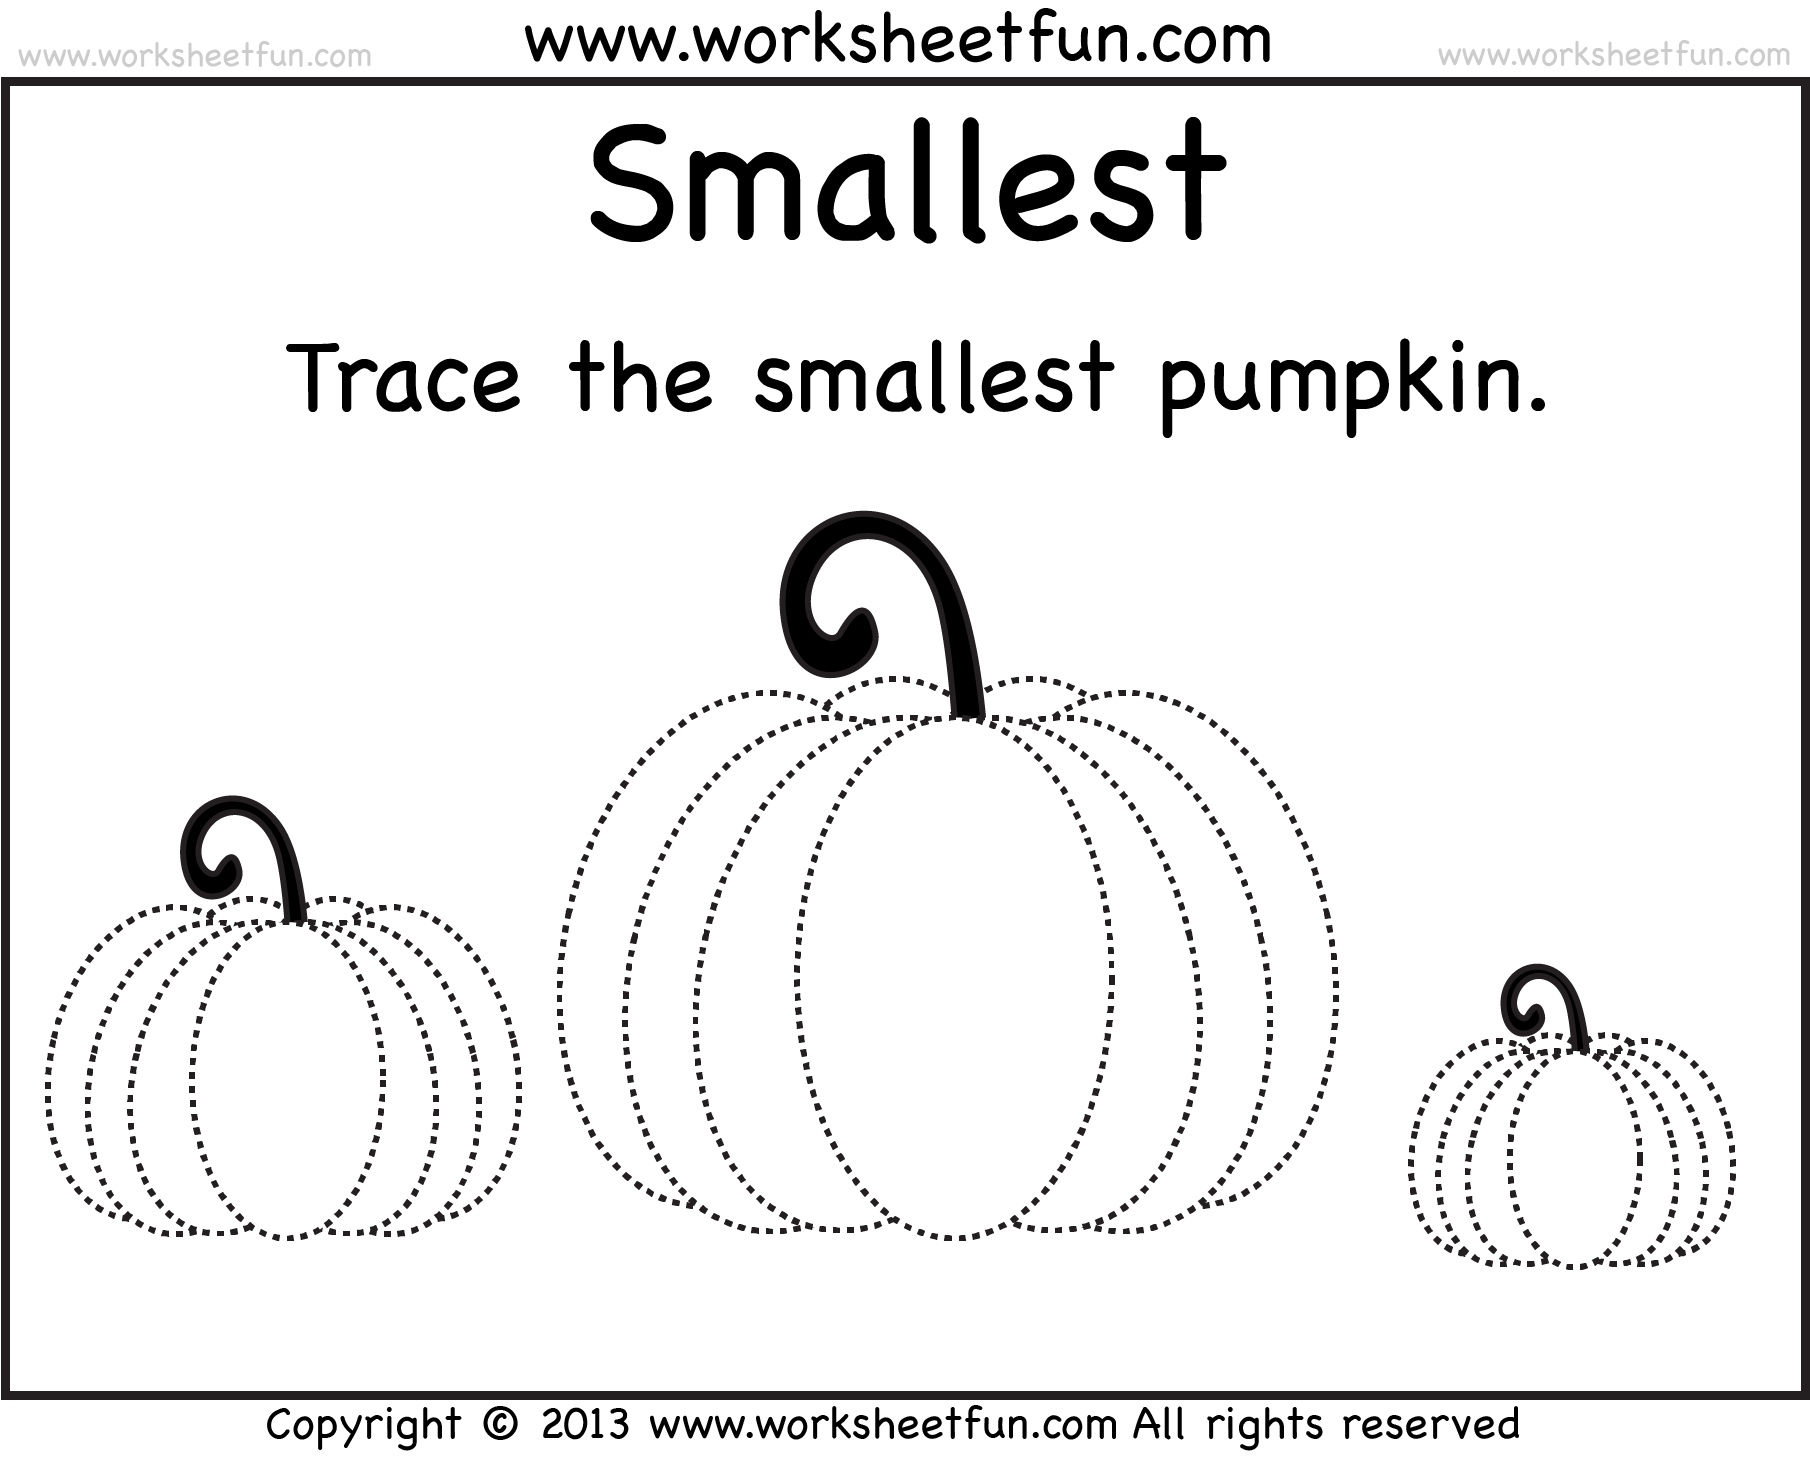 Pumpkin Tracing 2 Worksheets Free Printable Worksheets Worksheetfun